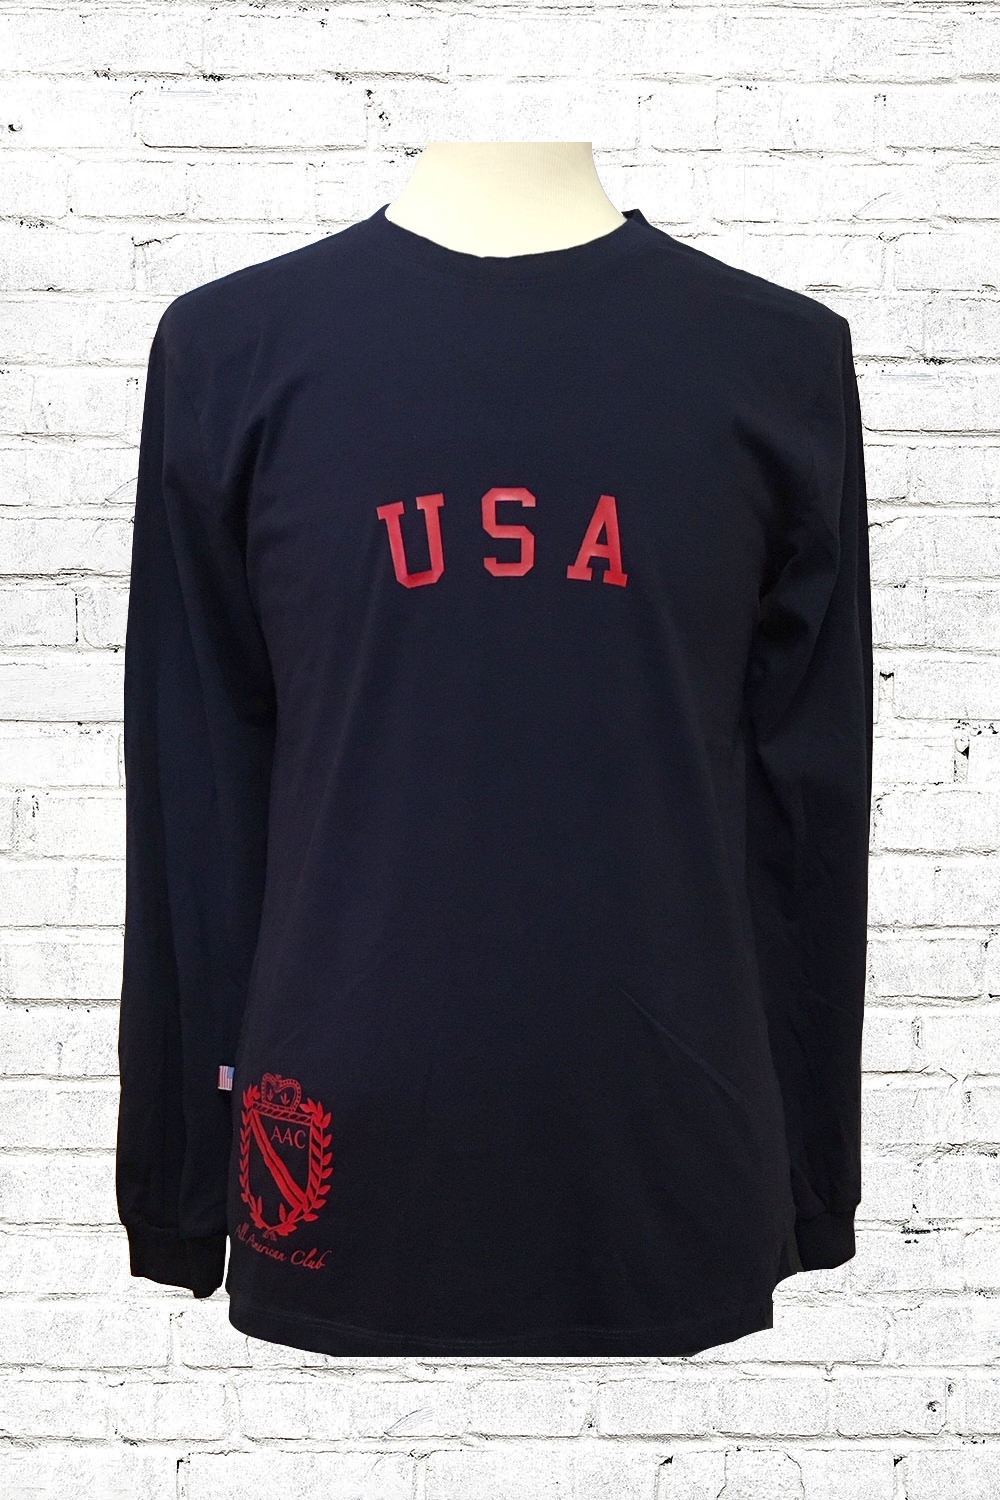 AAC USA Shirt - $42.00Homegrown. Homespun. Homemade. Right here in the USA. This is the softest, most durable cotton you will ever touch.100% CottonClassic fit.Available in: Navy with RedWhite with RedWhite with NavyMade in the USA.BUY NOW